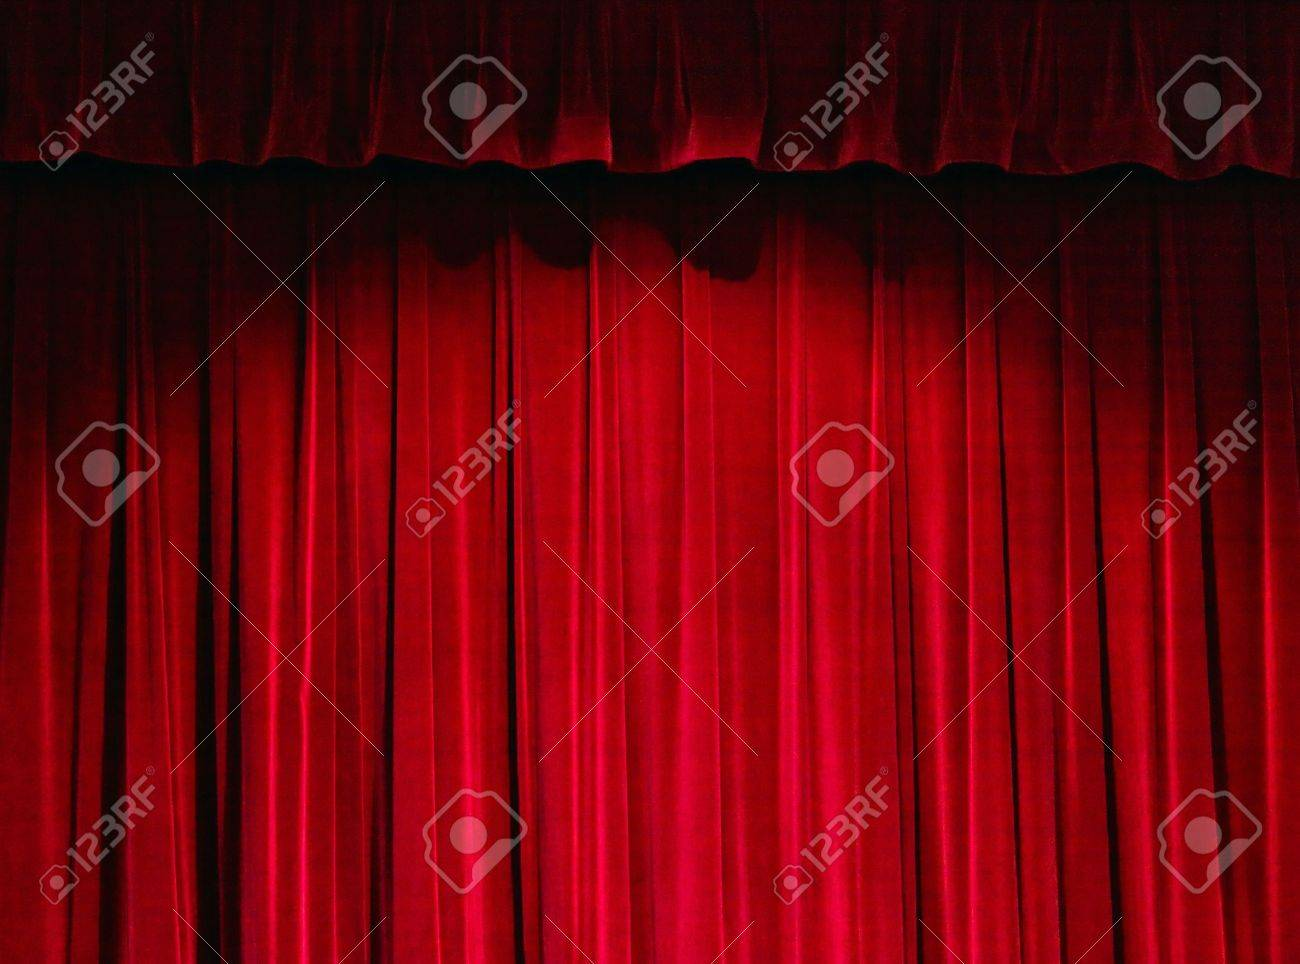 Closed theater curtains - Red Theater Curtain Stock Photo 3160722